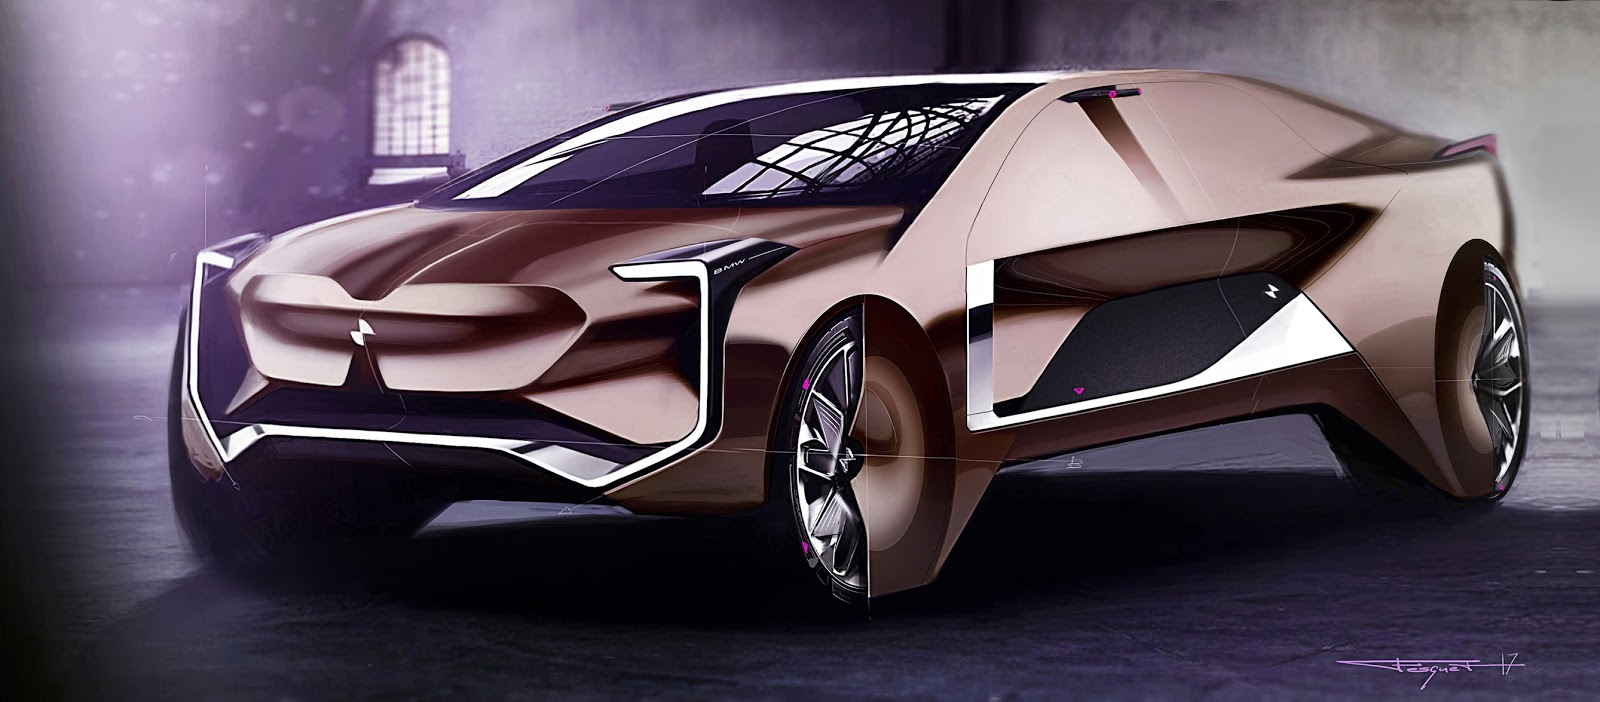 small resolution of bmw x8 gran coupe luxury vision by julien fesquet